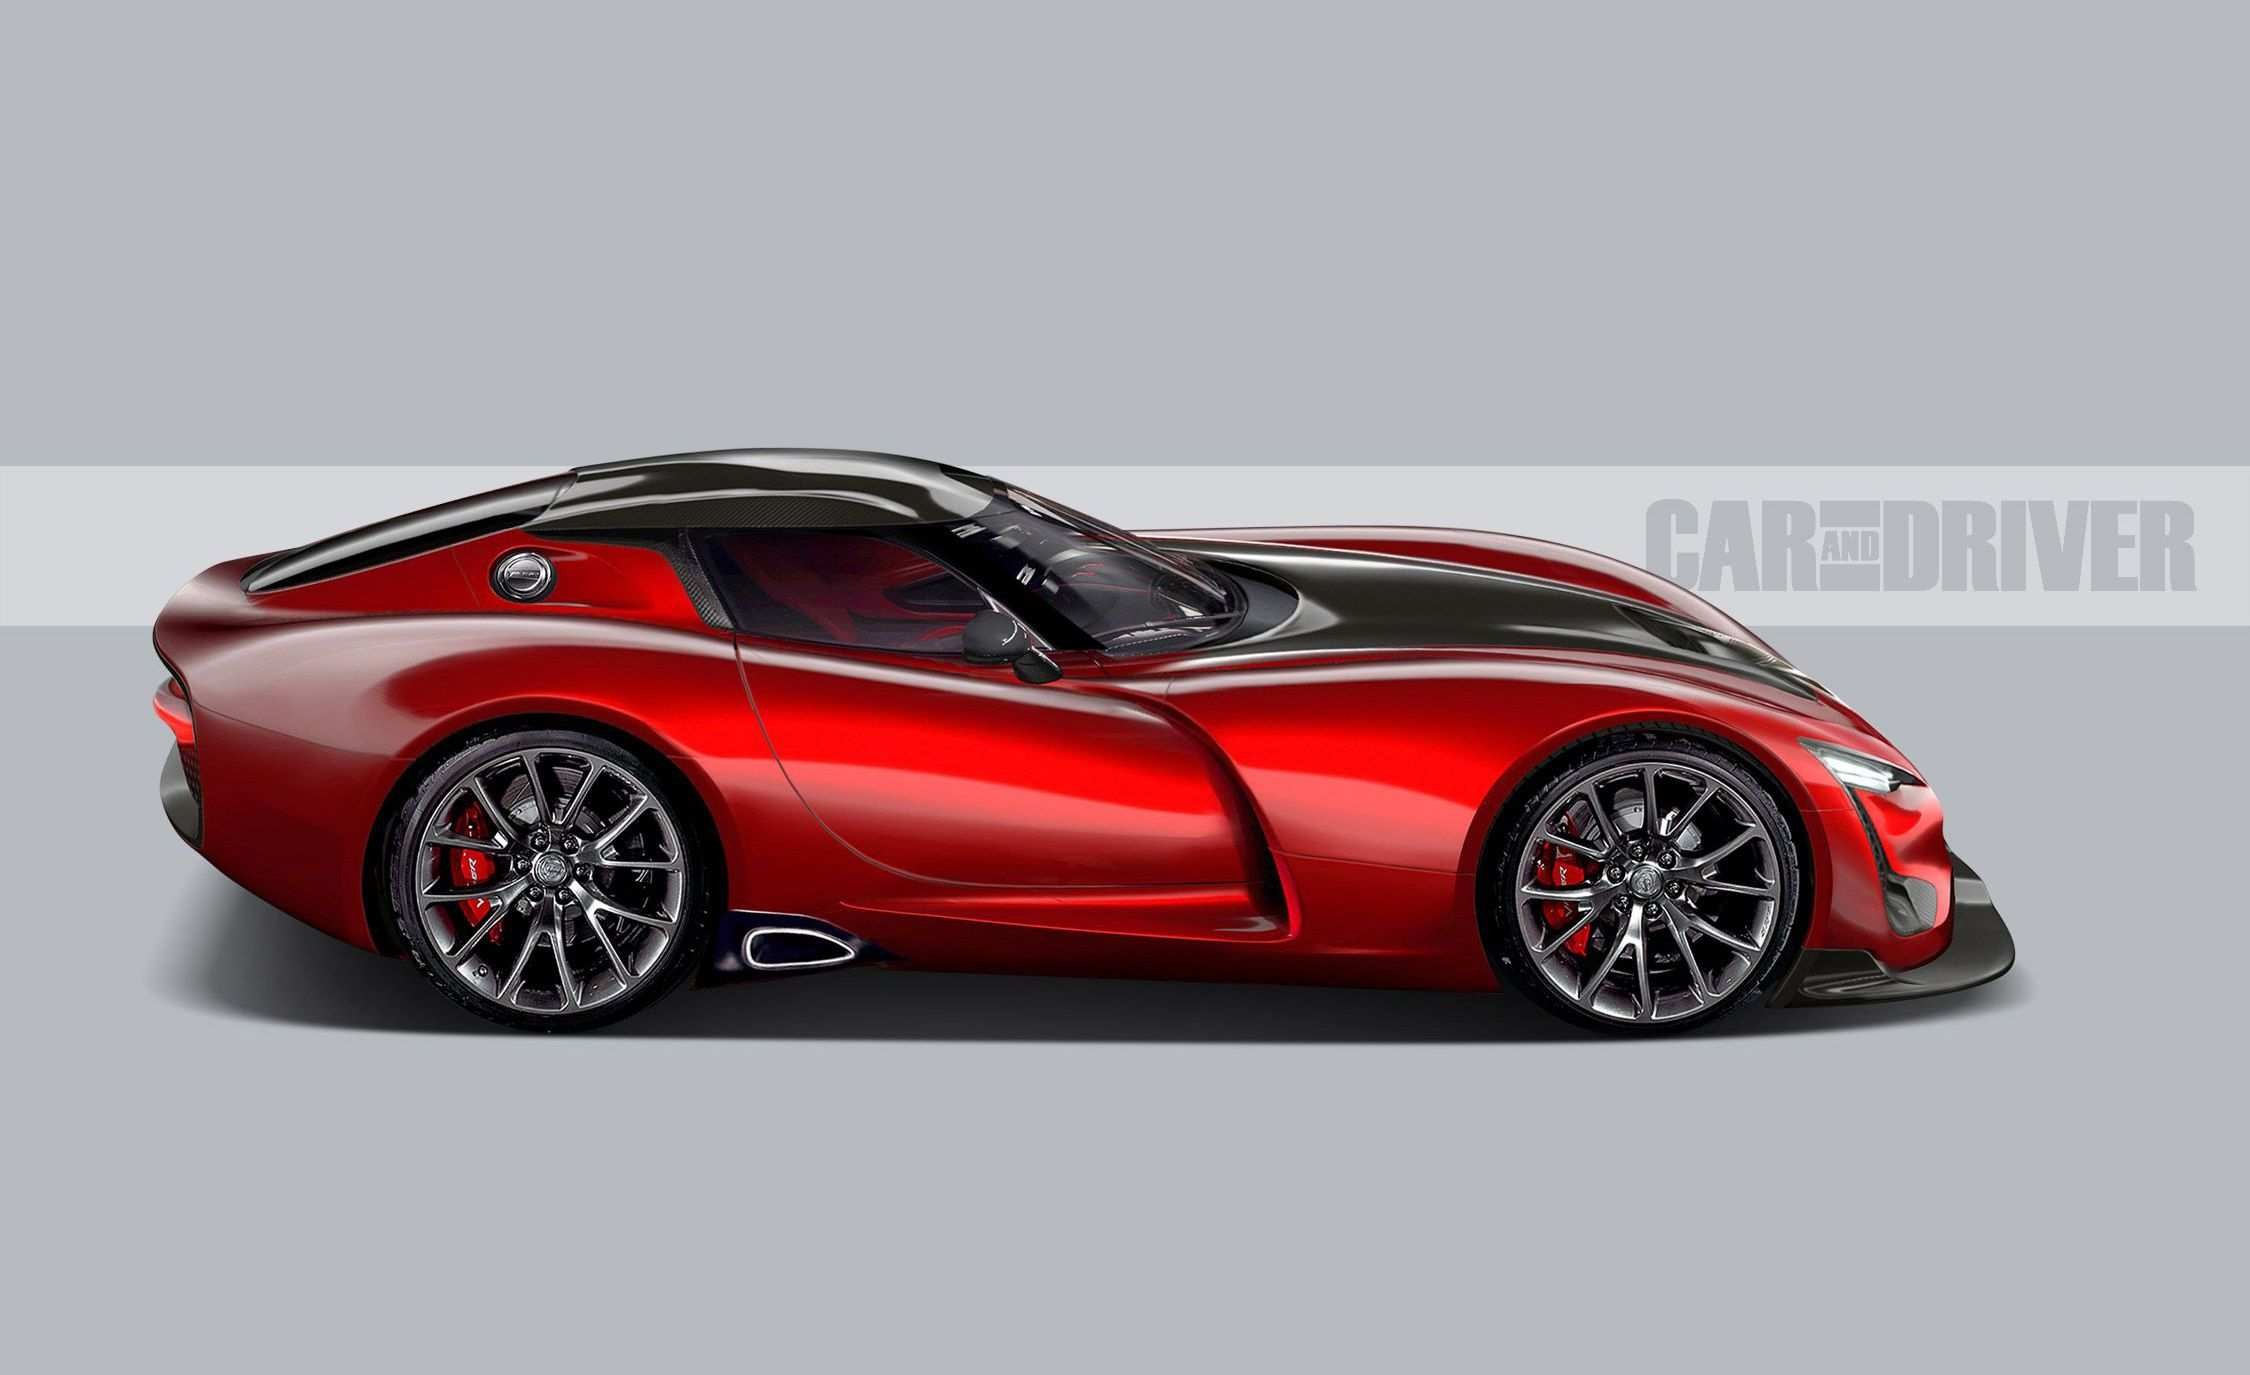 47 New 2020 Dodge Viper Exterior and Interior with 2020 Dodge Viper